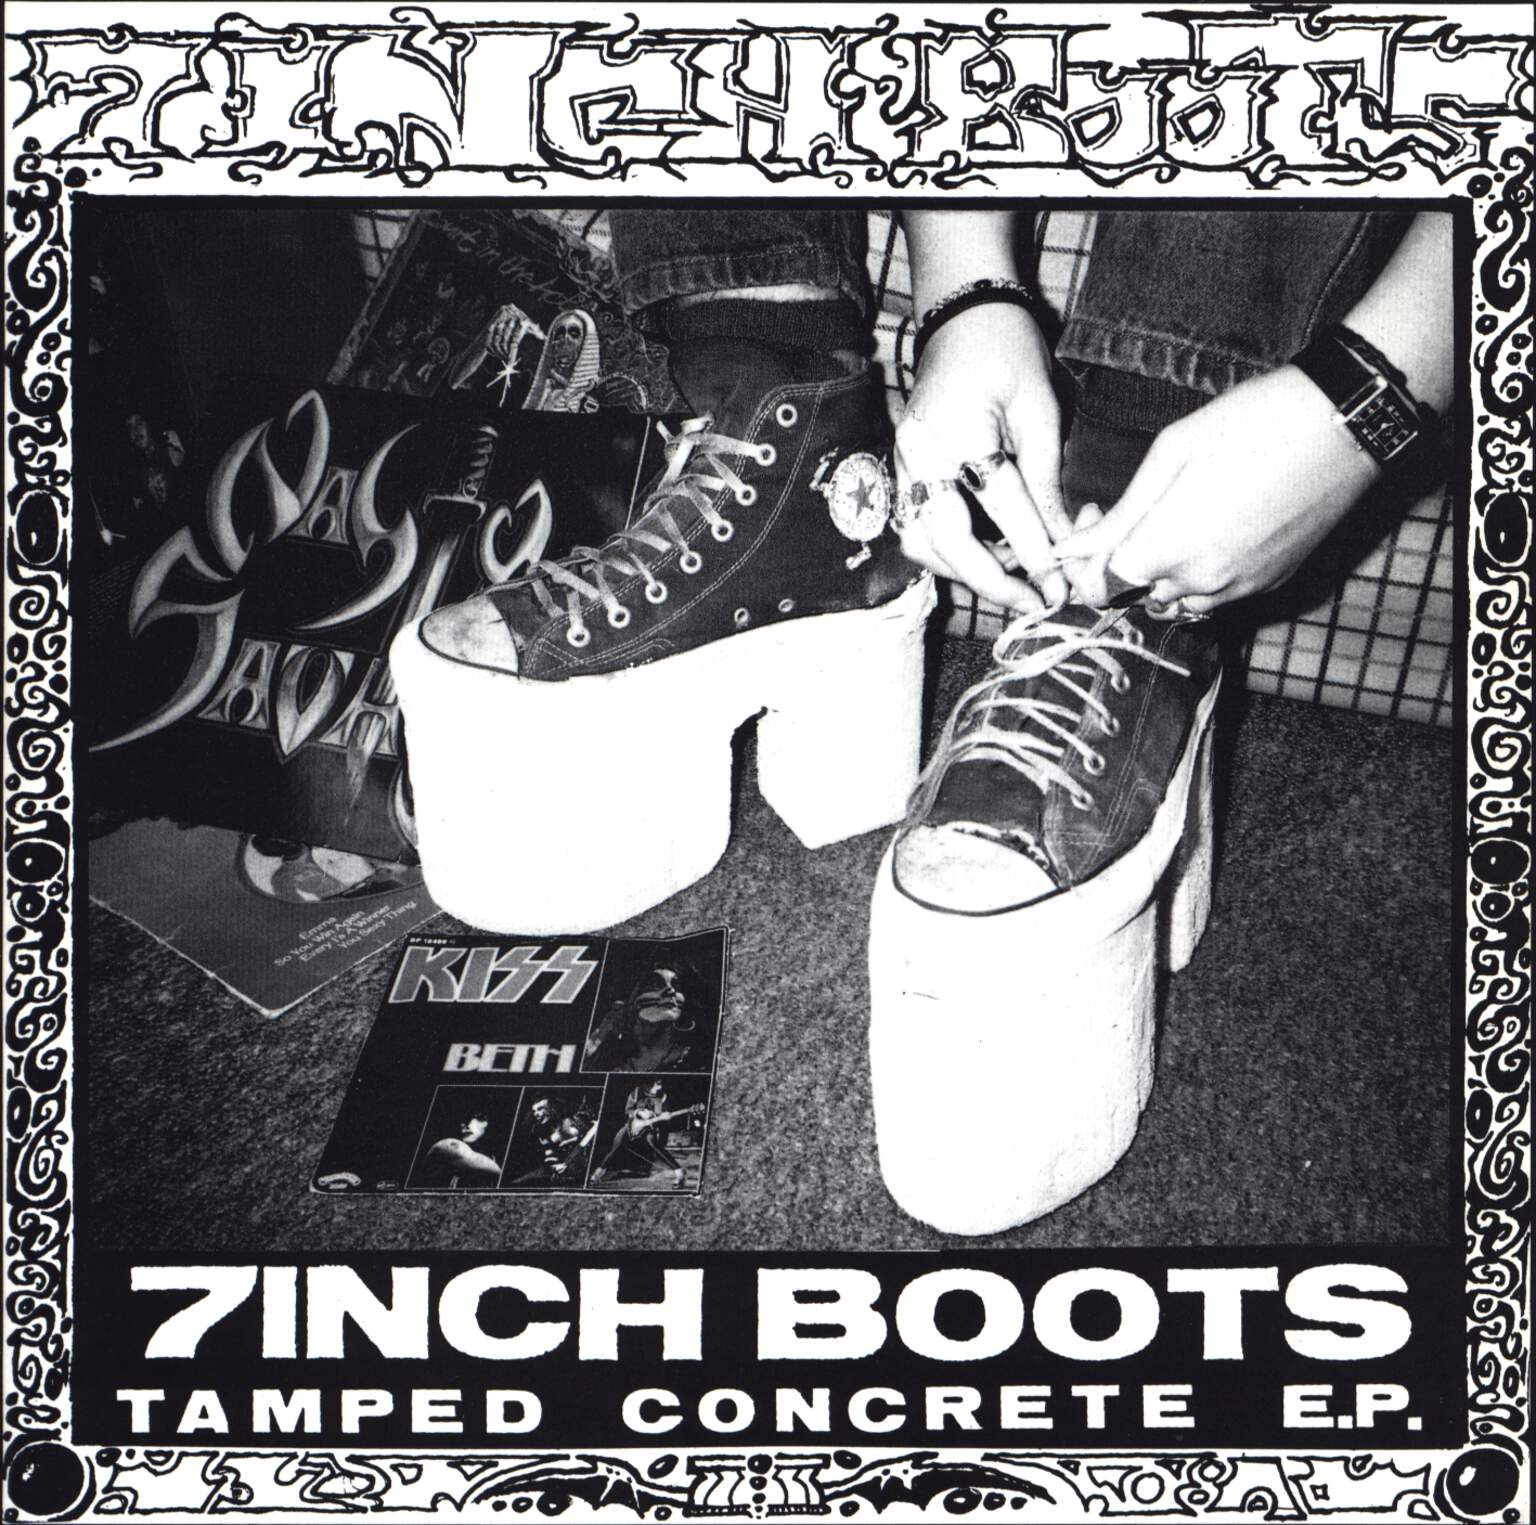 "7 Inch Boots: Tamped Concrete E.P., 7"" Single (Vinyl)"